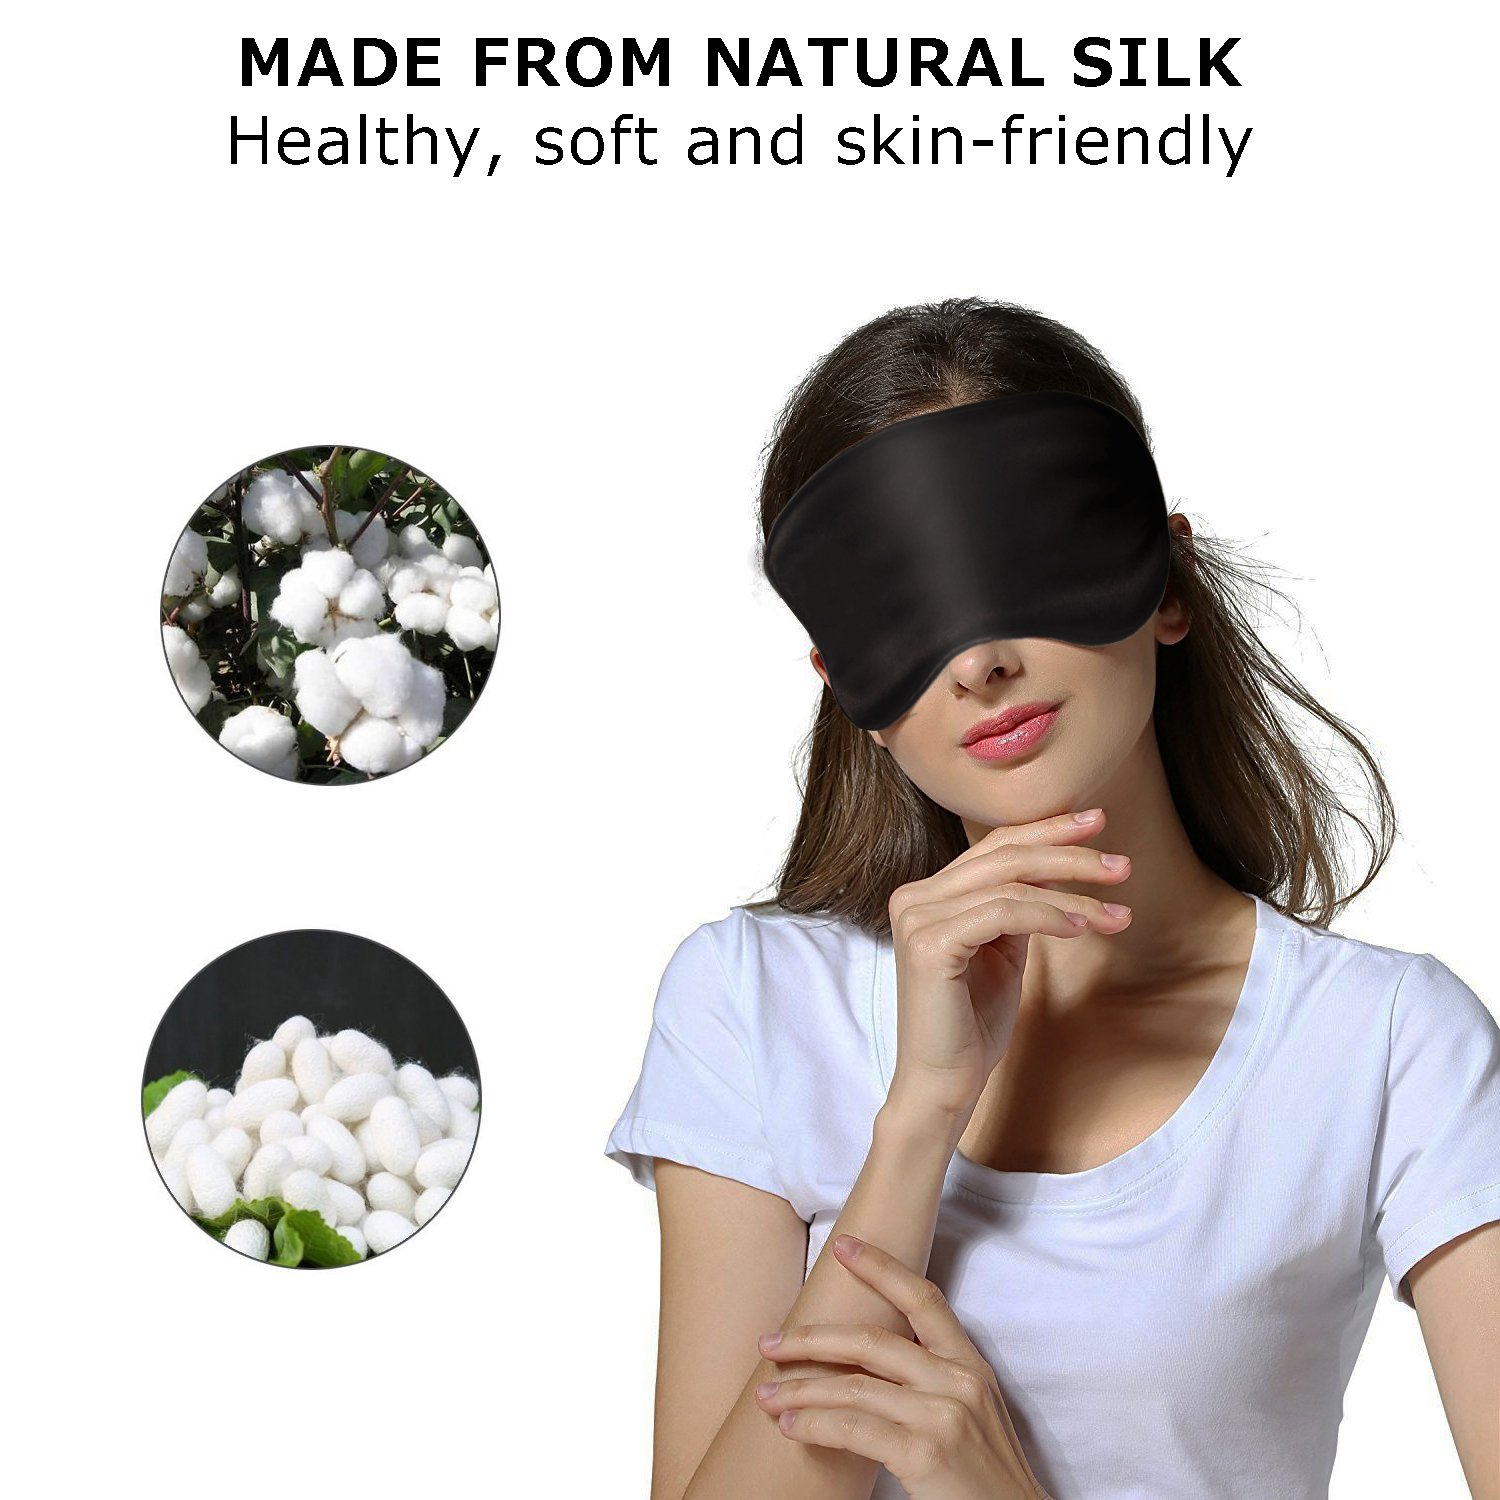 Natural Silk Sleep Mask for Women & Men with Adjustable Strap, 2 Pack, Super Soft & Smooth Eye Mask Blindfold for A Full Night Sleeping, Travel, Shift Work & Meditation, Works with Every Nap Position by ACVIOO (Image #2)